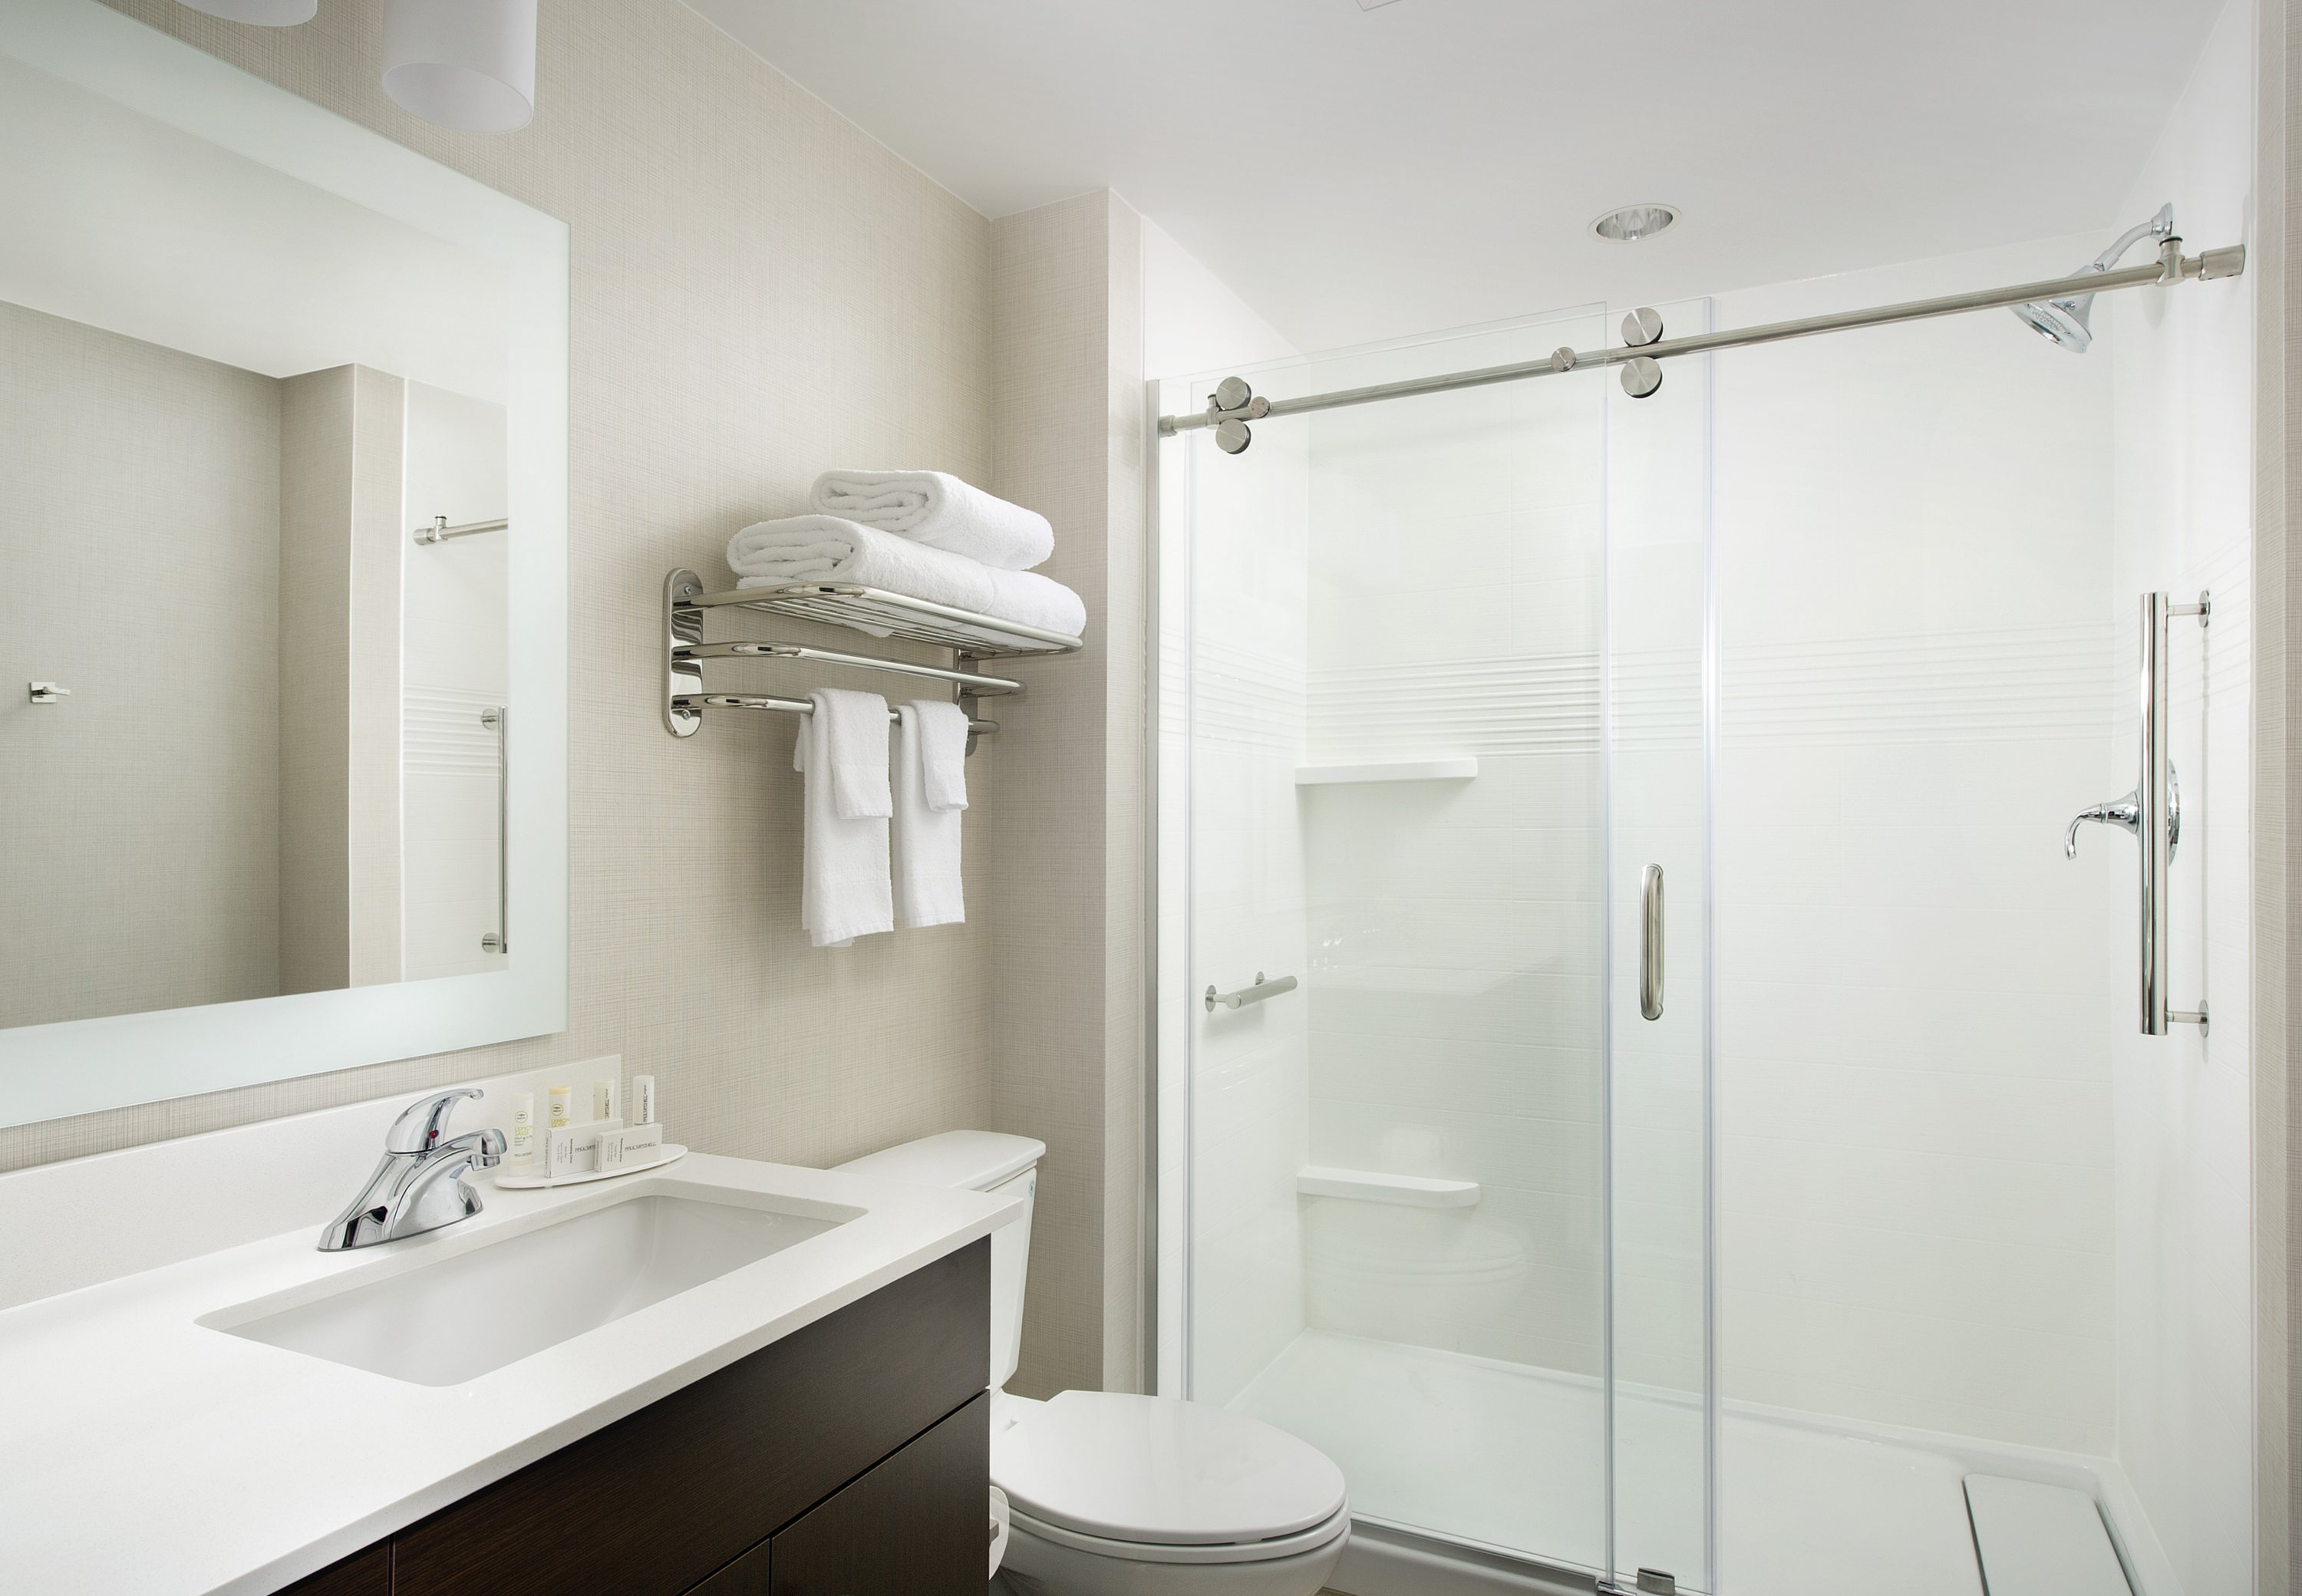 TownePlace Suites by Marriott Alexandria Fort Belvoir image 7